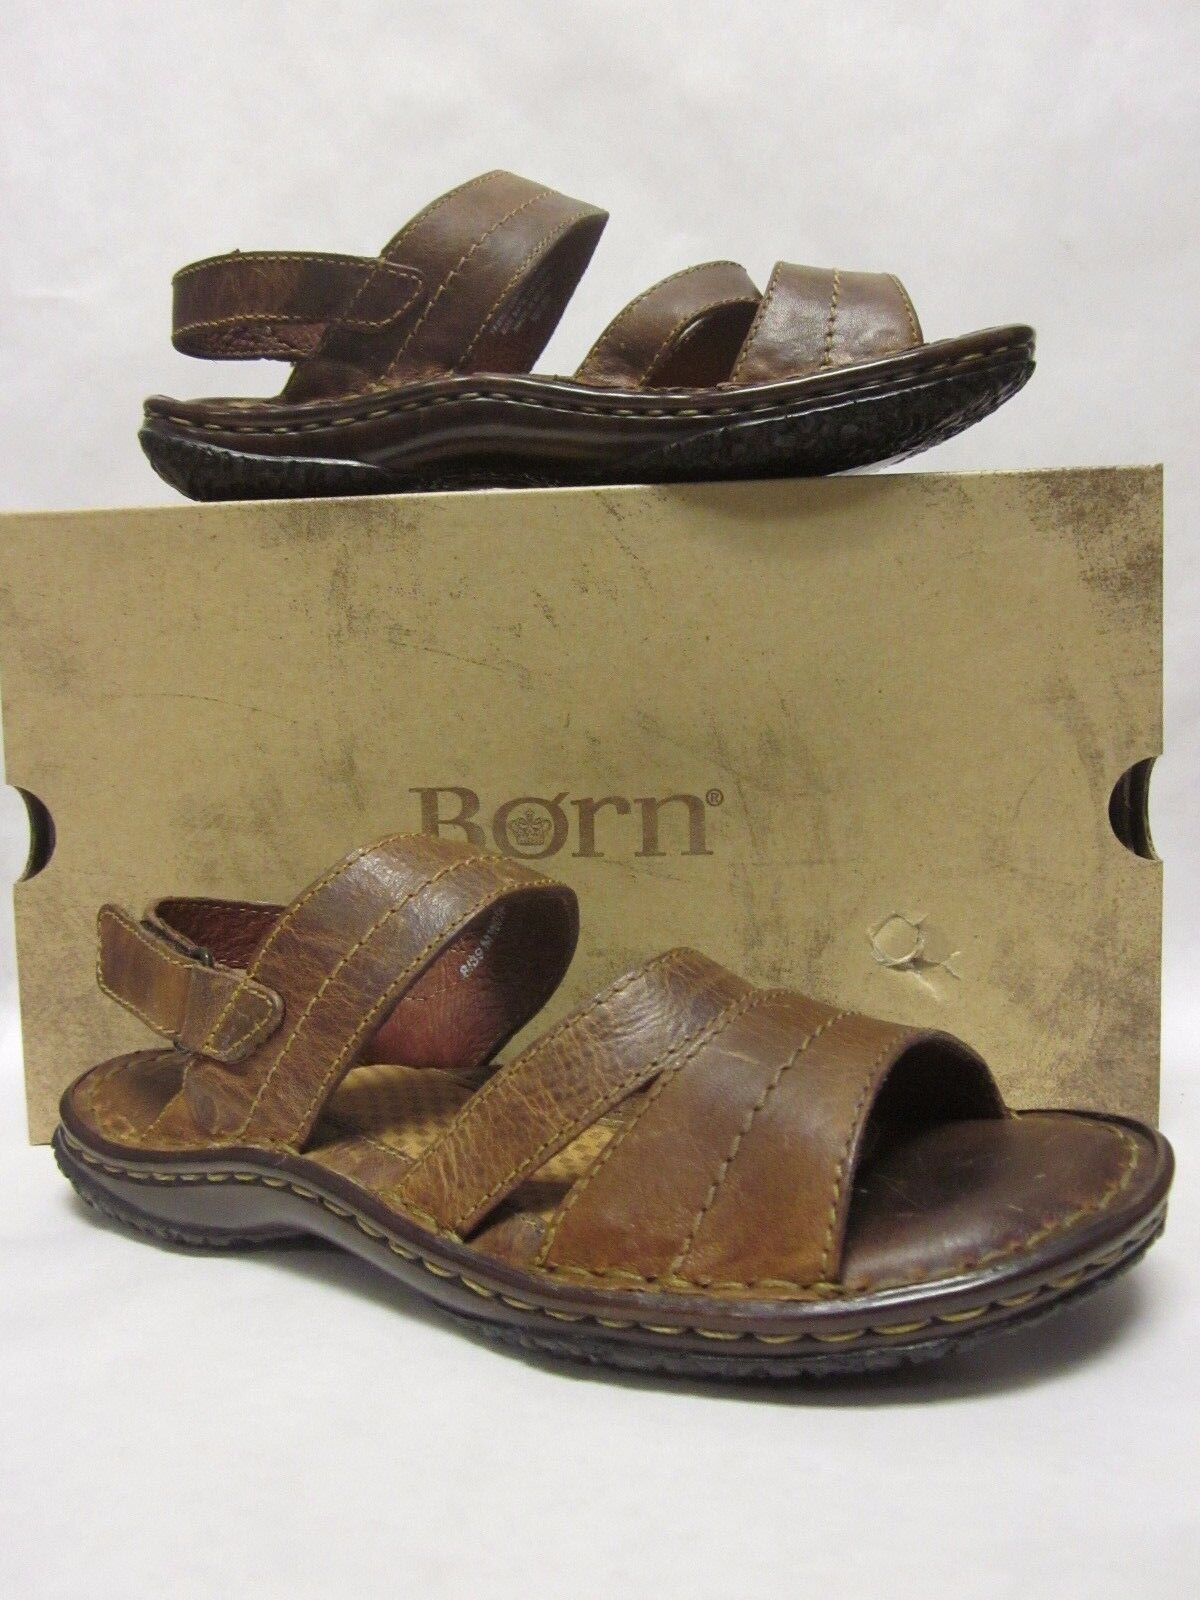 b38e48ee0f851 Born Born Born Peru Brown Distressed Sandal 290cd3 - mimhv ...